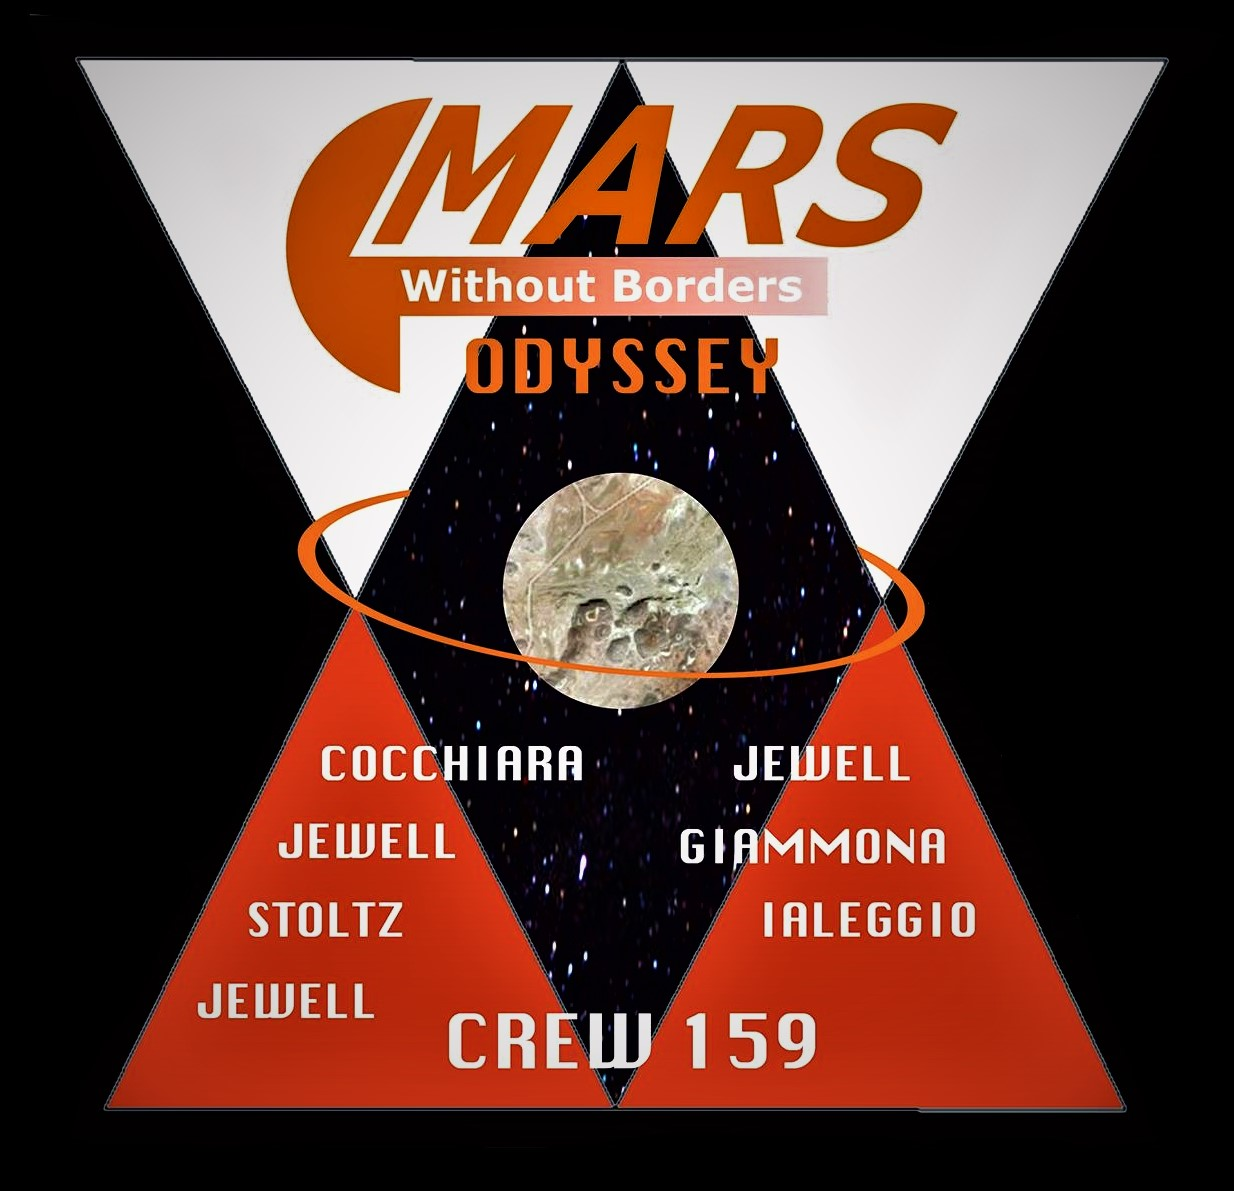 MWOB - MDRS CREW 159 - CLICK HERE